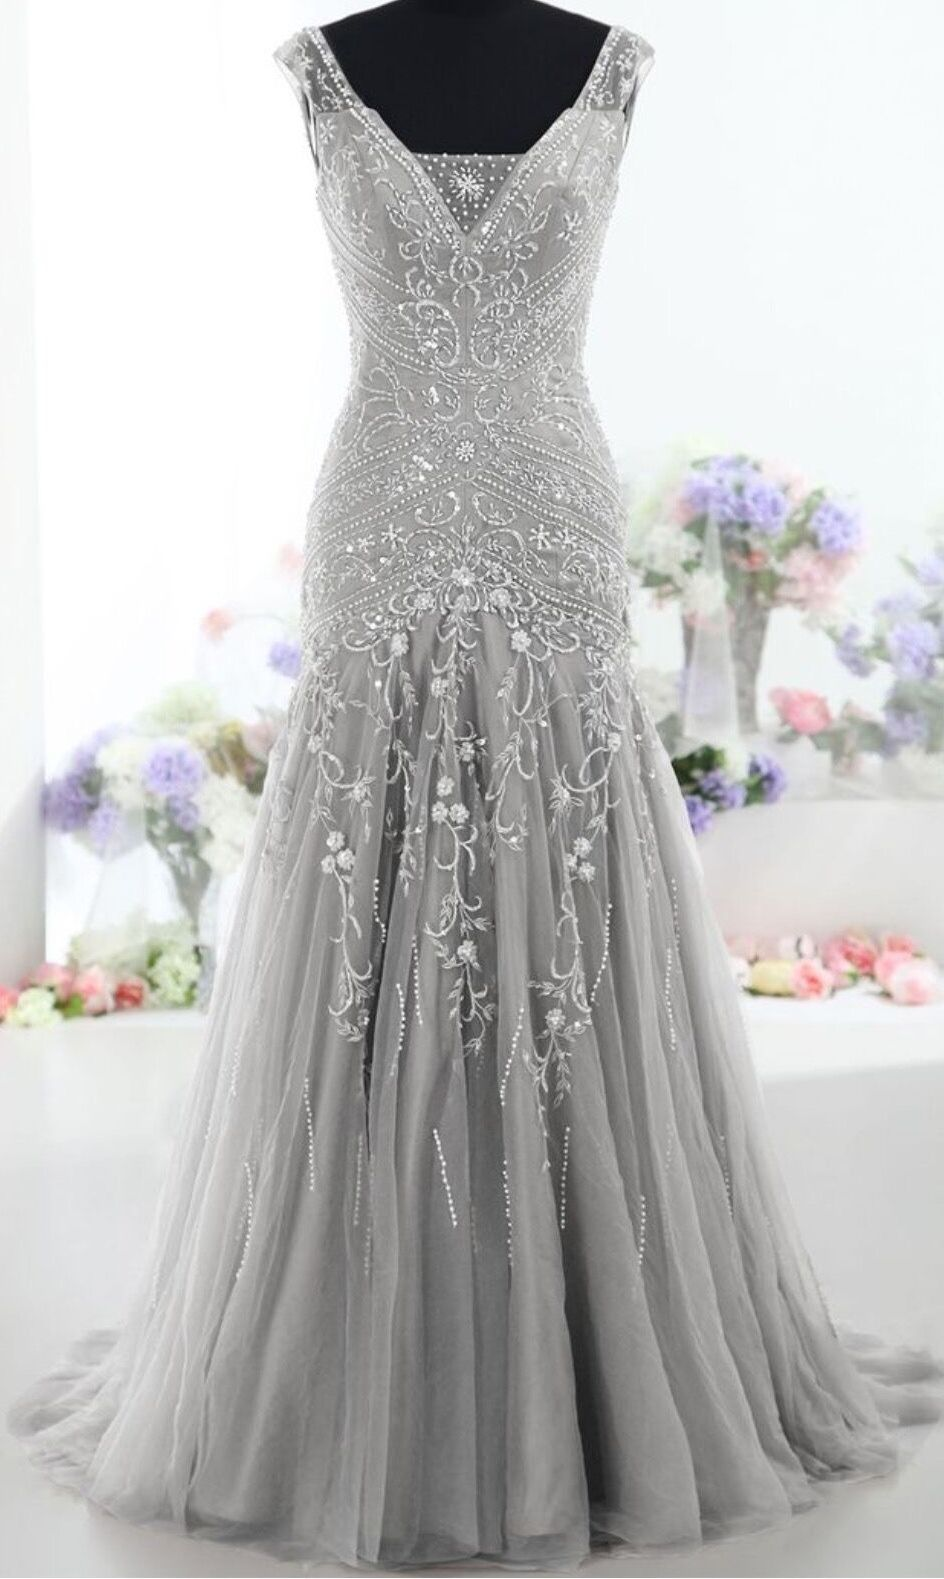 Silver long back up lace v neck beading prom dresses for Silver wedding dresses 25th anniversary